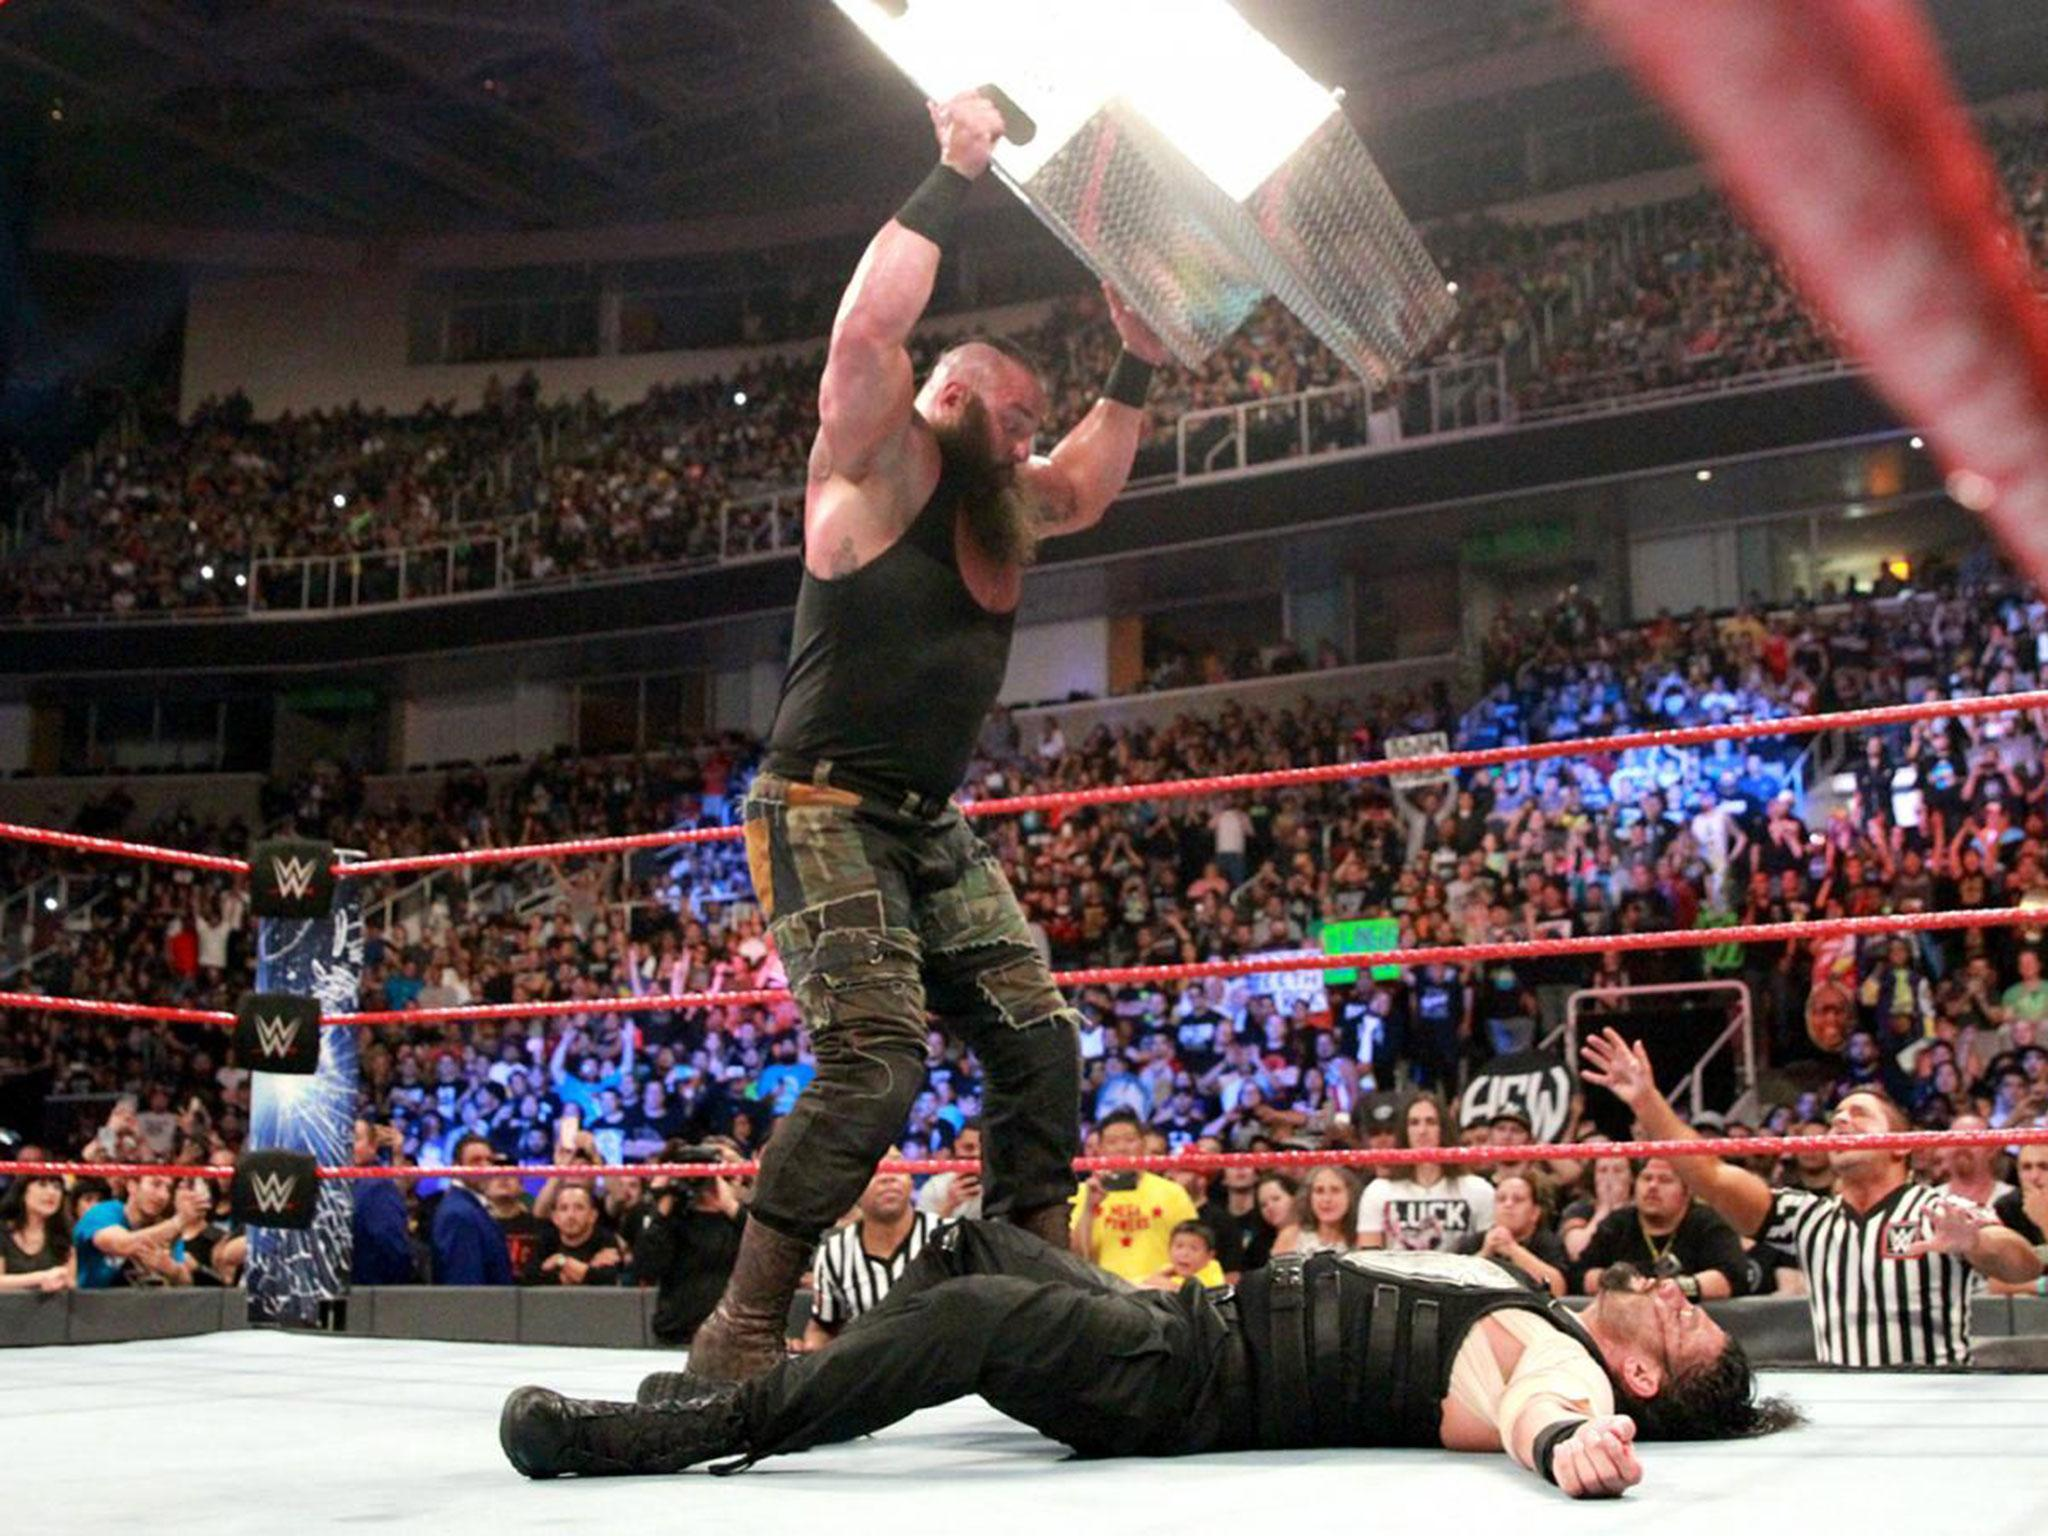 WWE Payback results: Braun Strowman destroys Roman Reigns ... | 2048 x 1536 jpeg 372kB